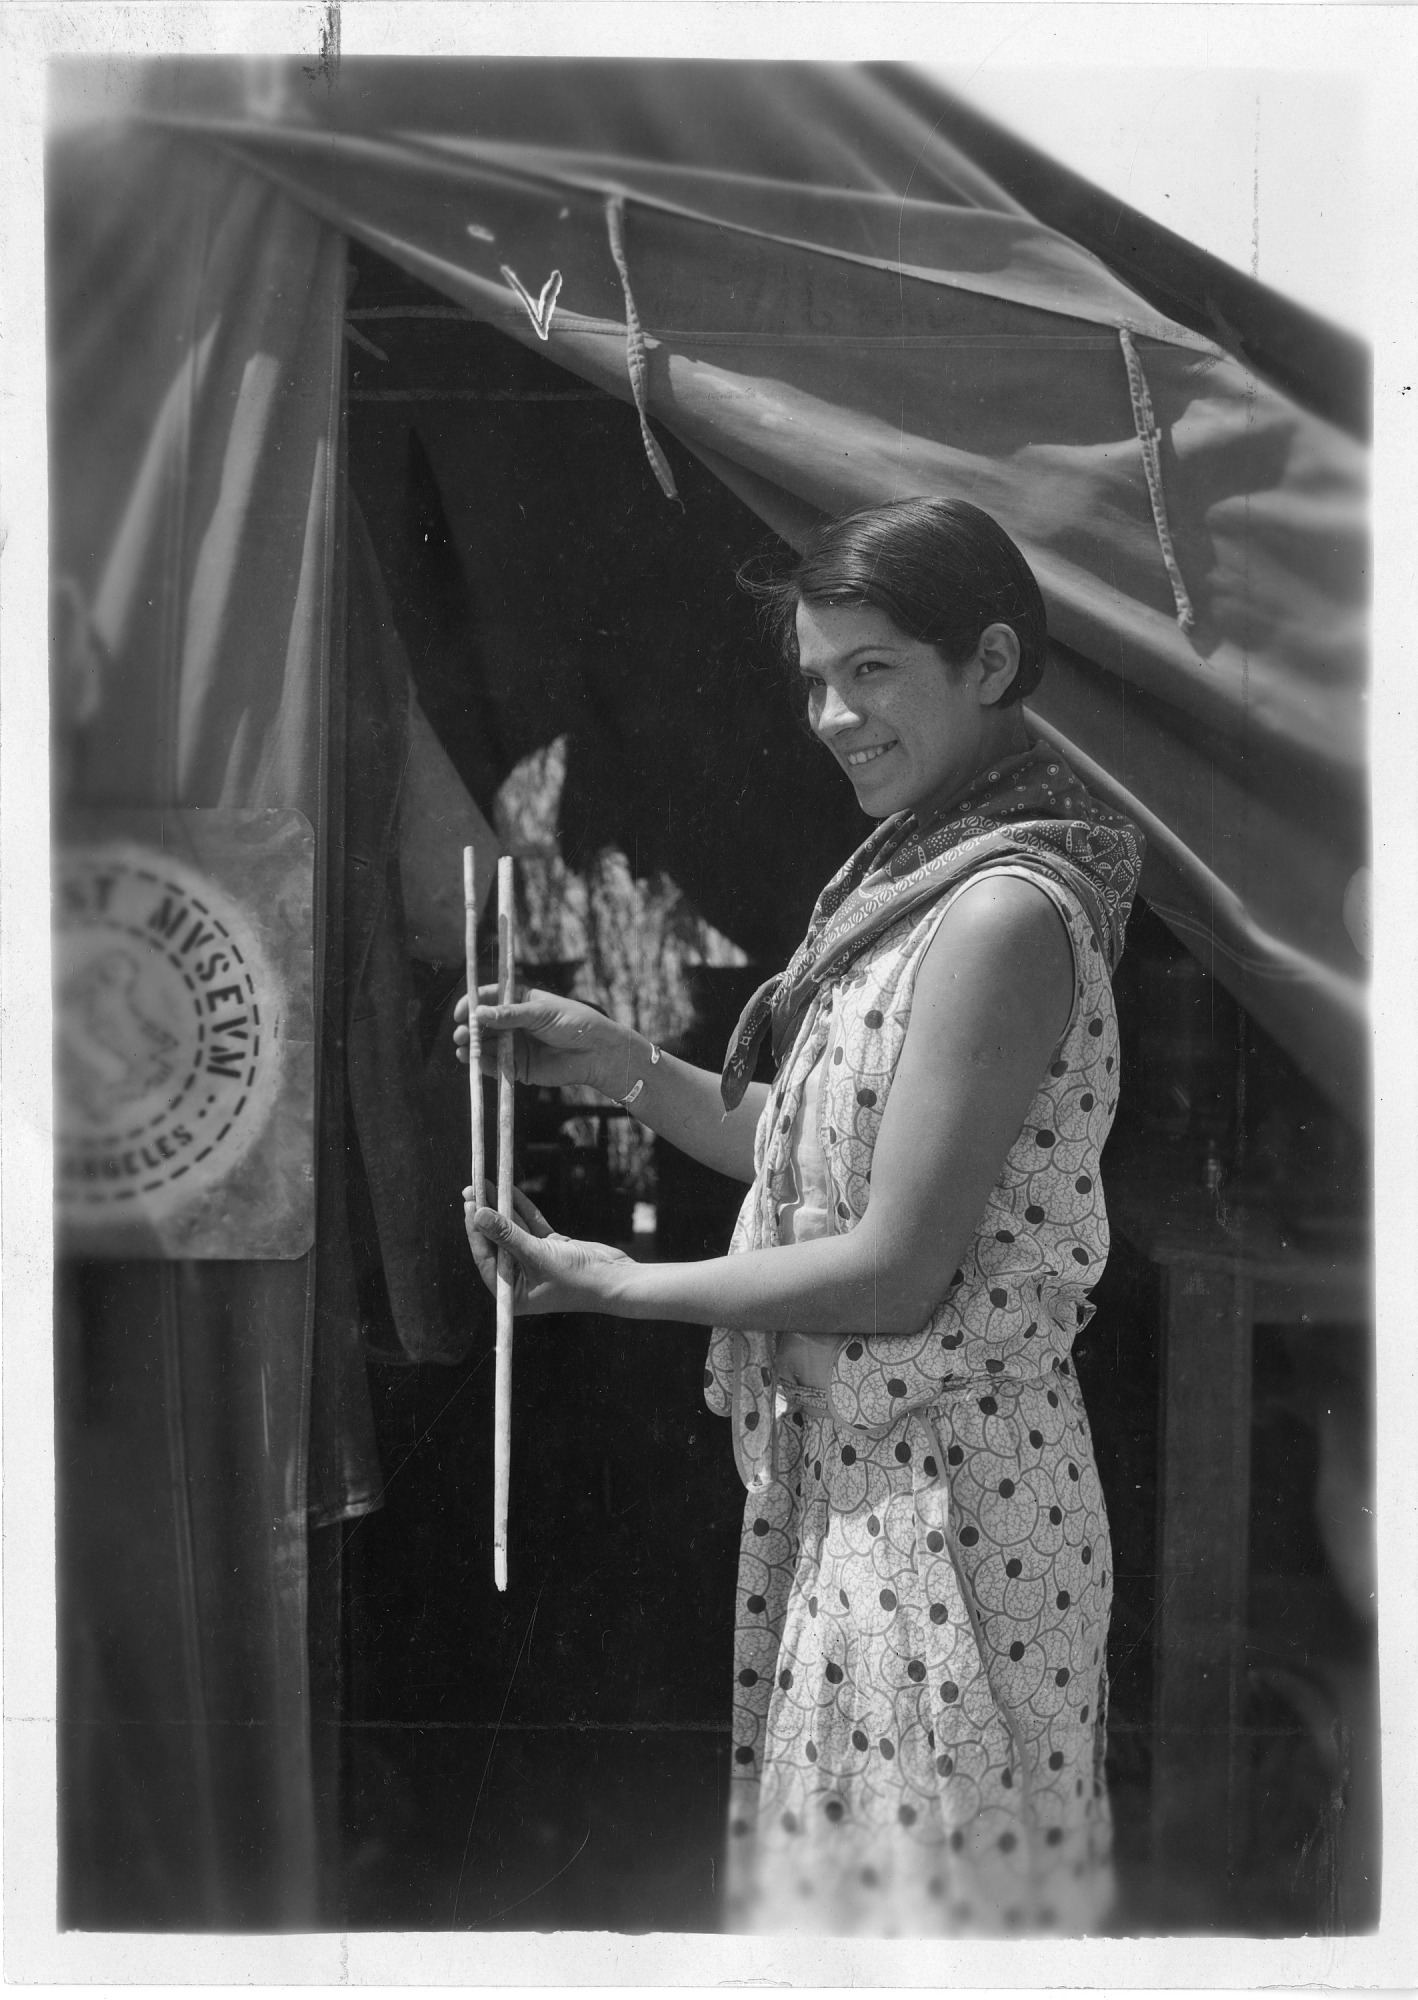 Bertha Parker Pallan [Cody] (1907-1978), Smithsonian Institution Archives, SIA Acc. 90-105 [SIA2009-0779].